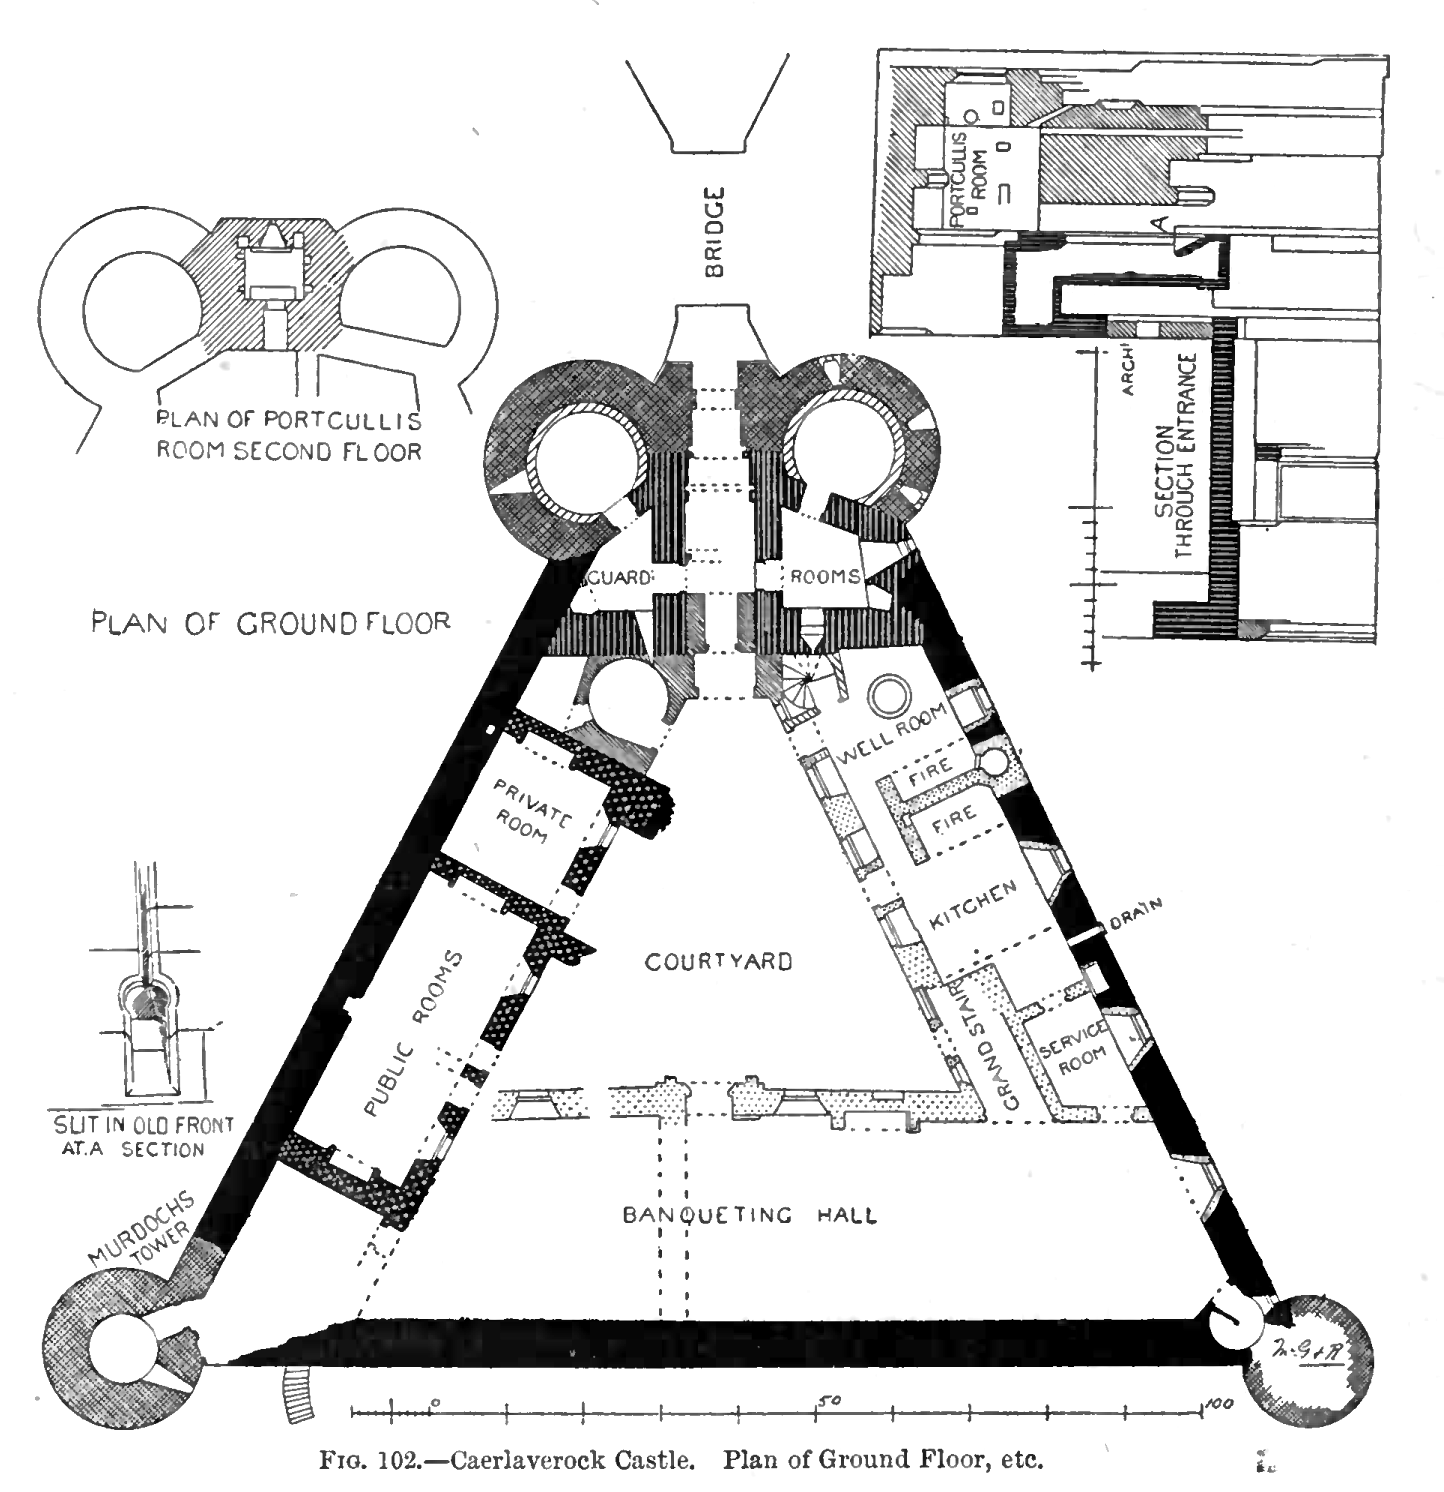 FileCaerlaverock Castle Plan Of Ground Floor Etcpng